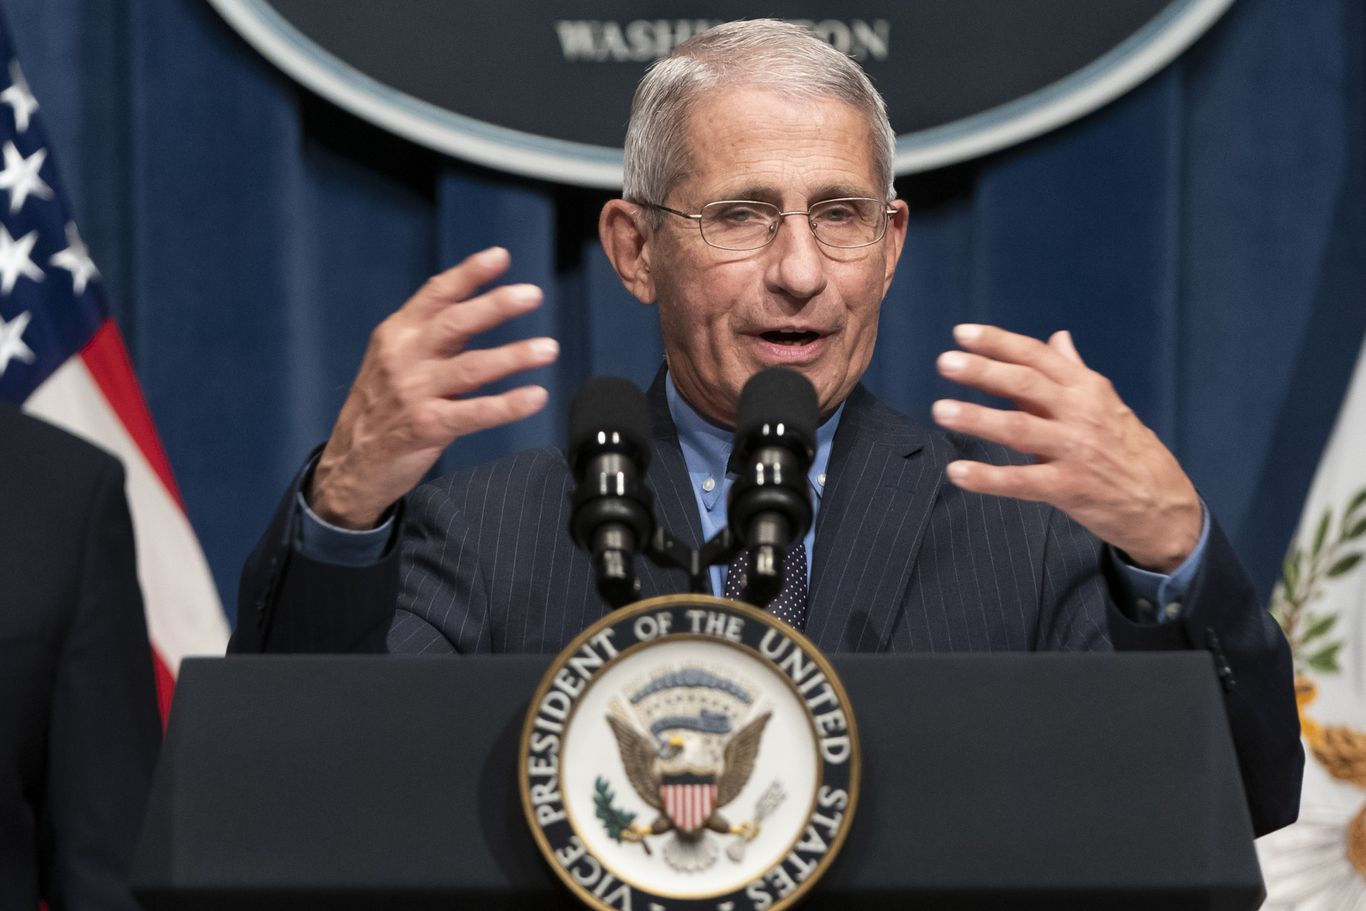 Fauci: Coronavirus vaccine may not be enough to achieve herd immunity in U.S.